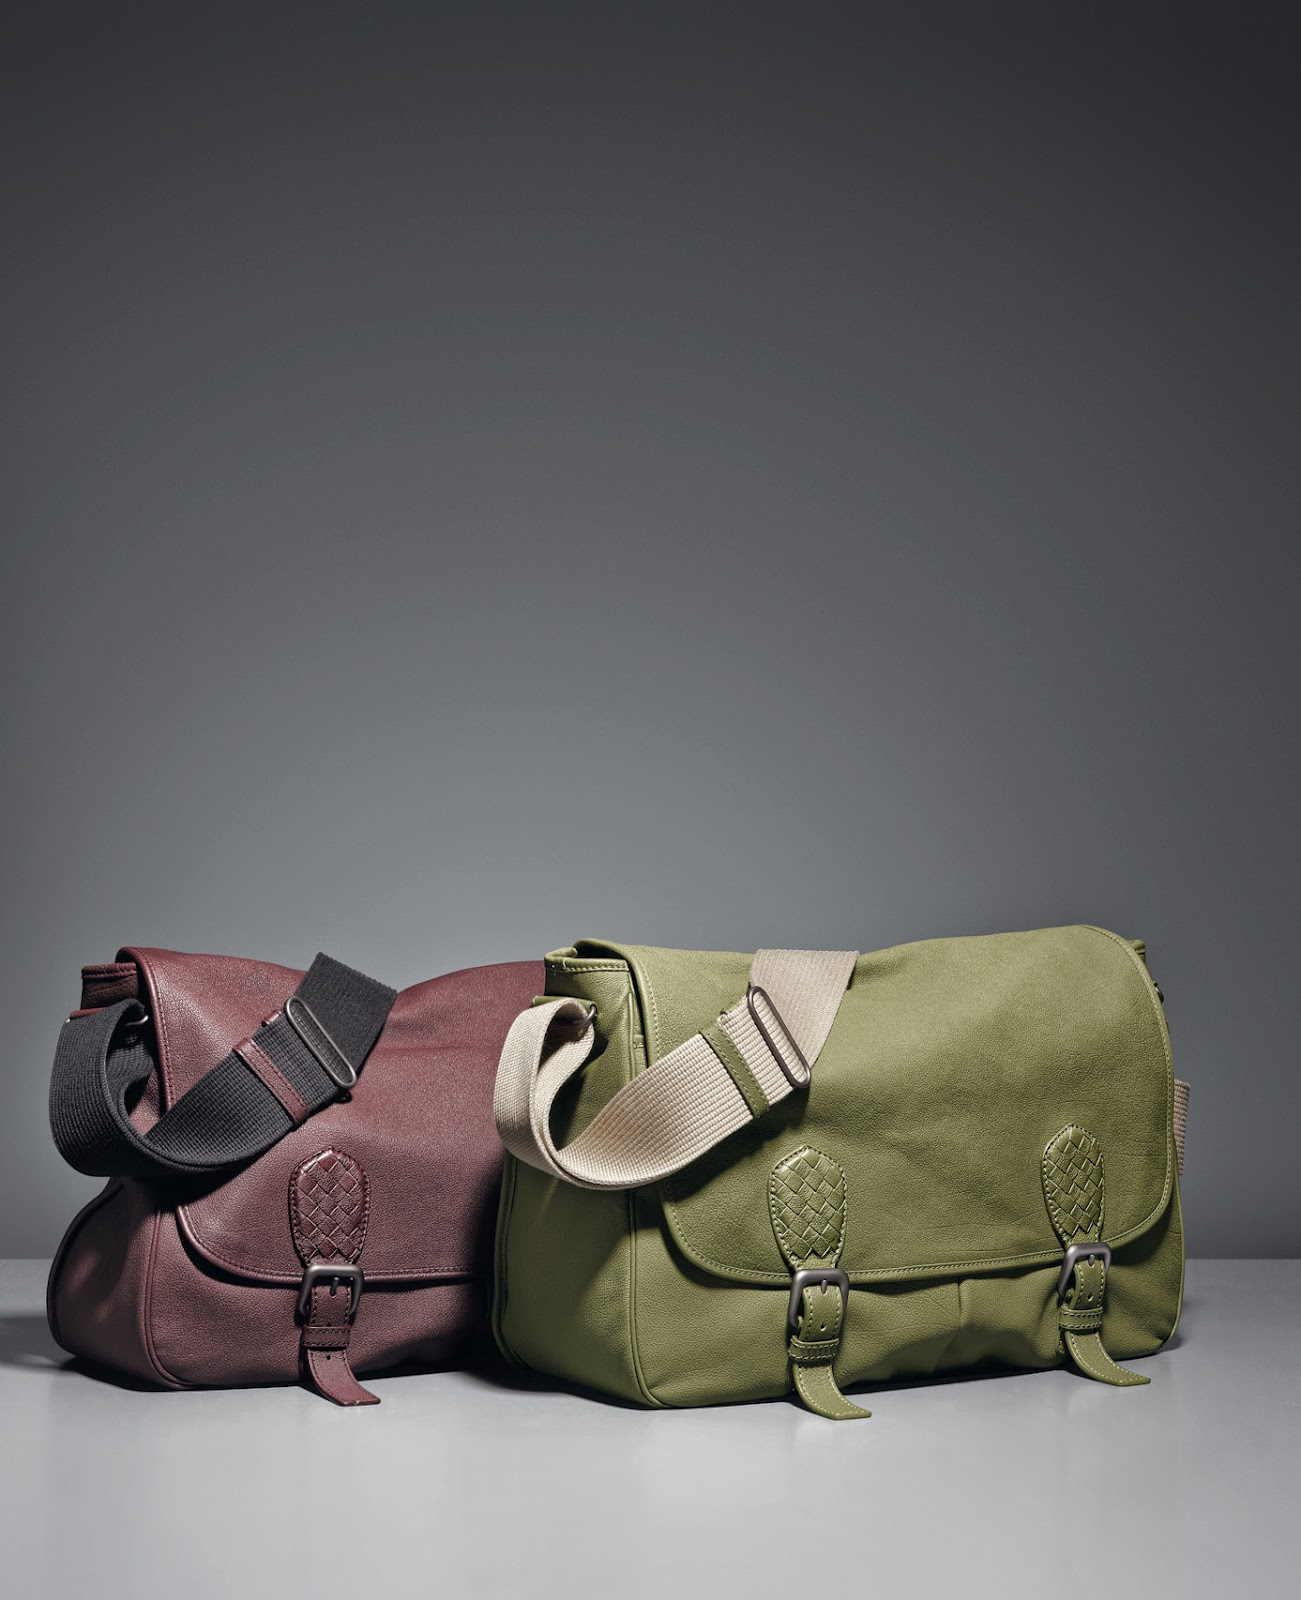 Bottega Veneta's Gardena Messenger for Men